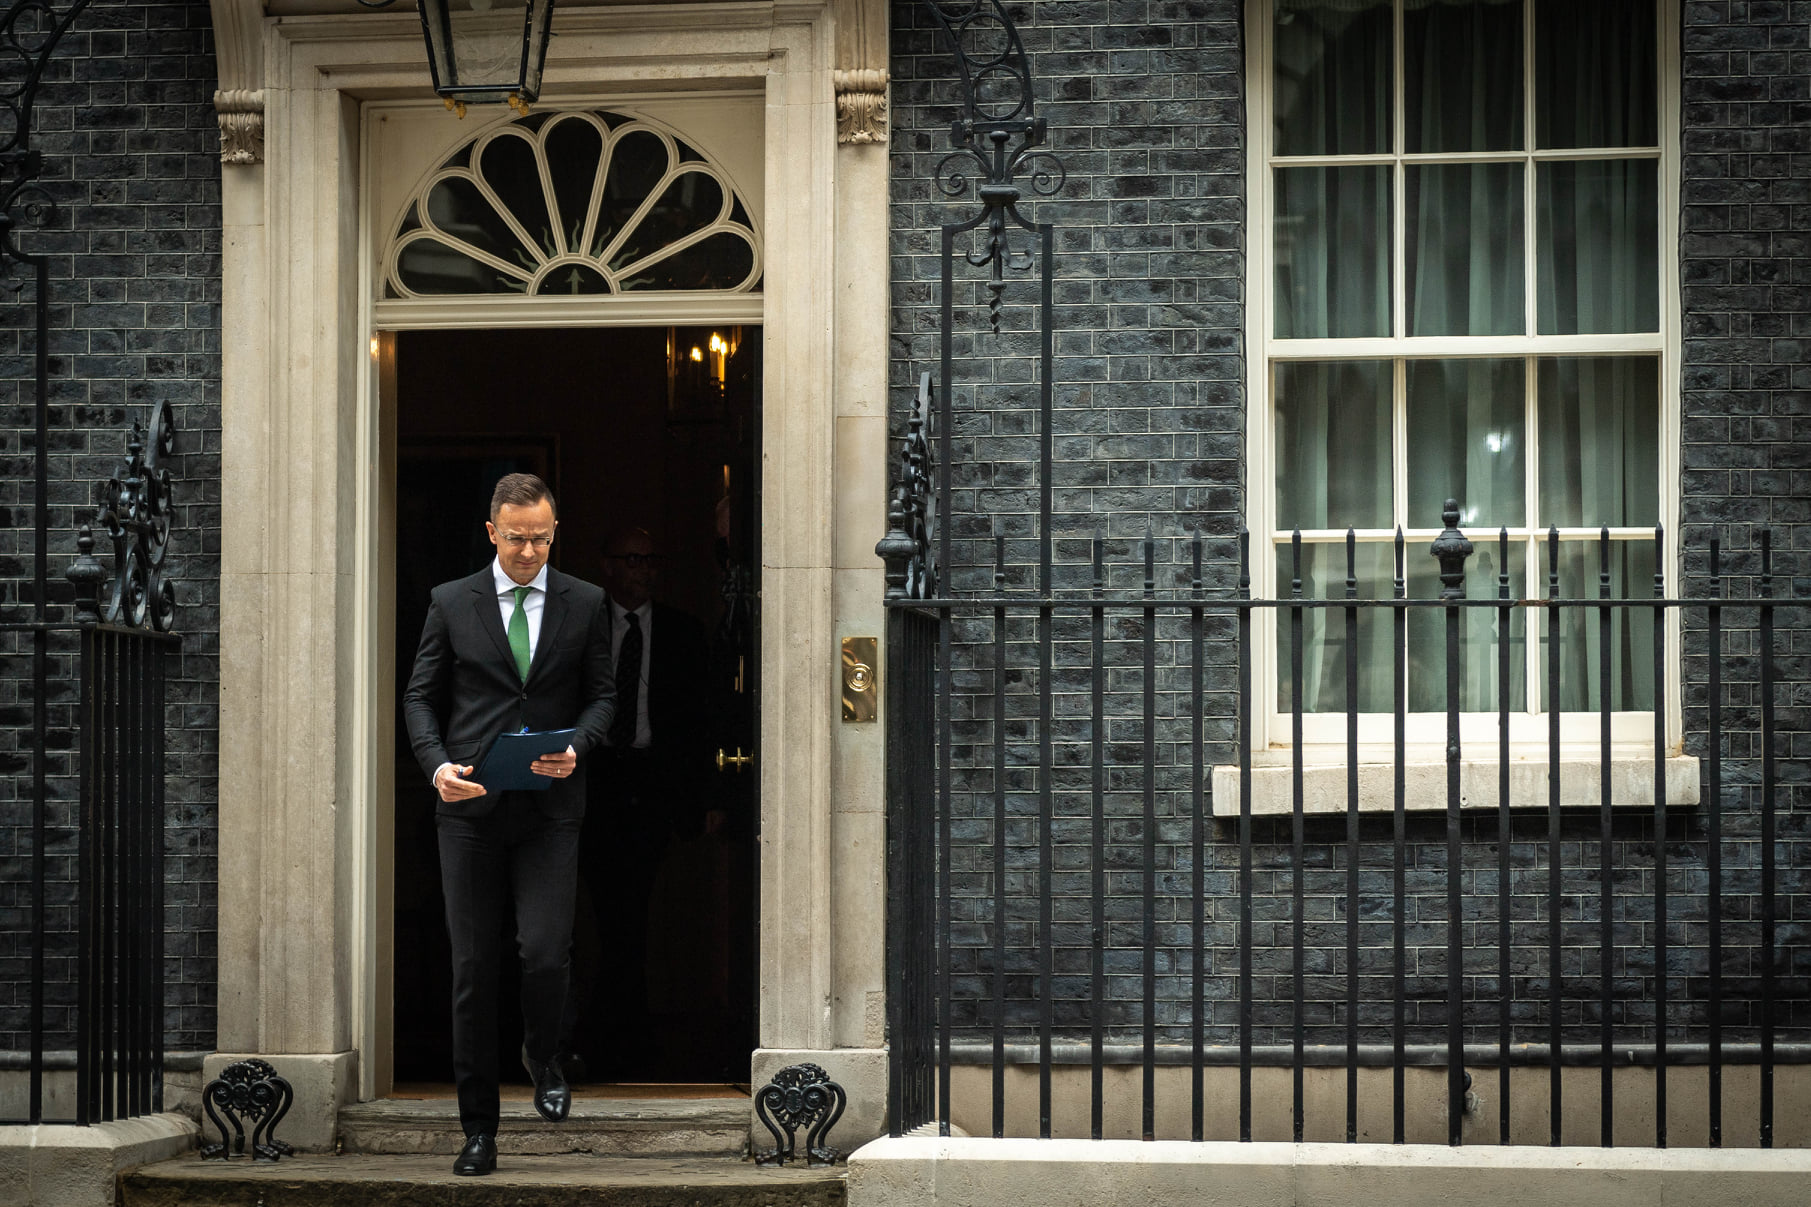 FM Szijjártó: All Agreements in Place for Post-Brexit Cooperation With UK